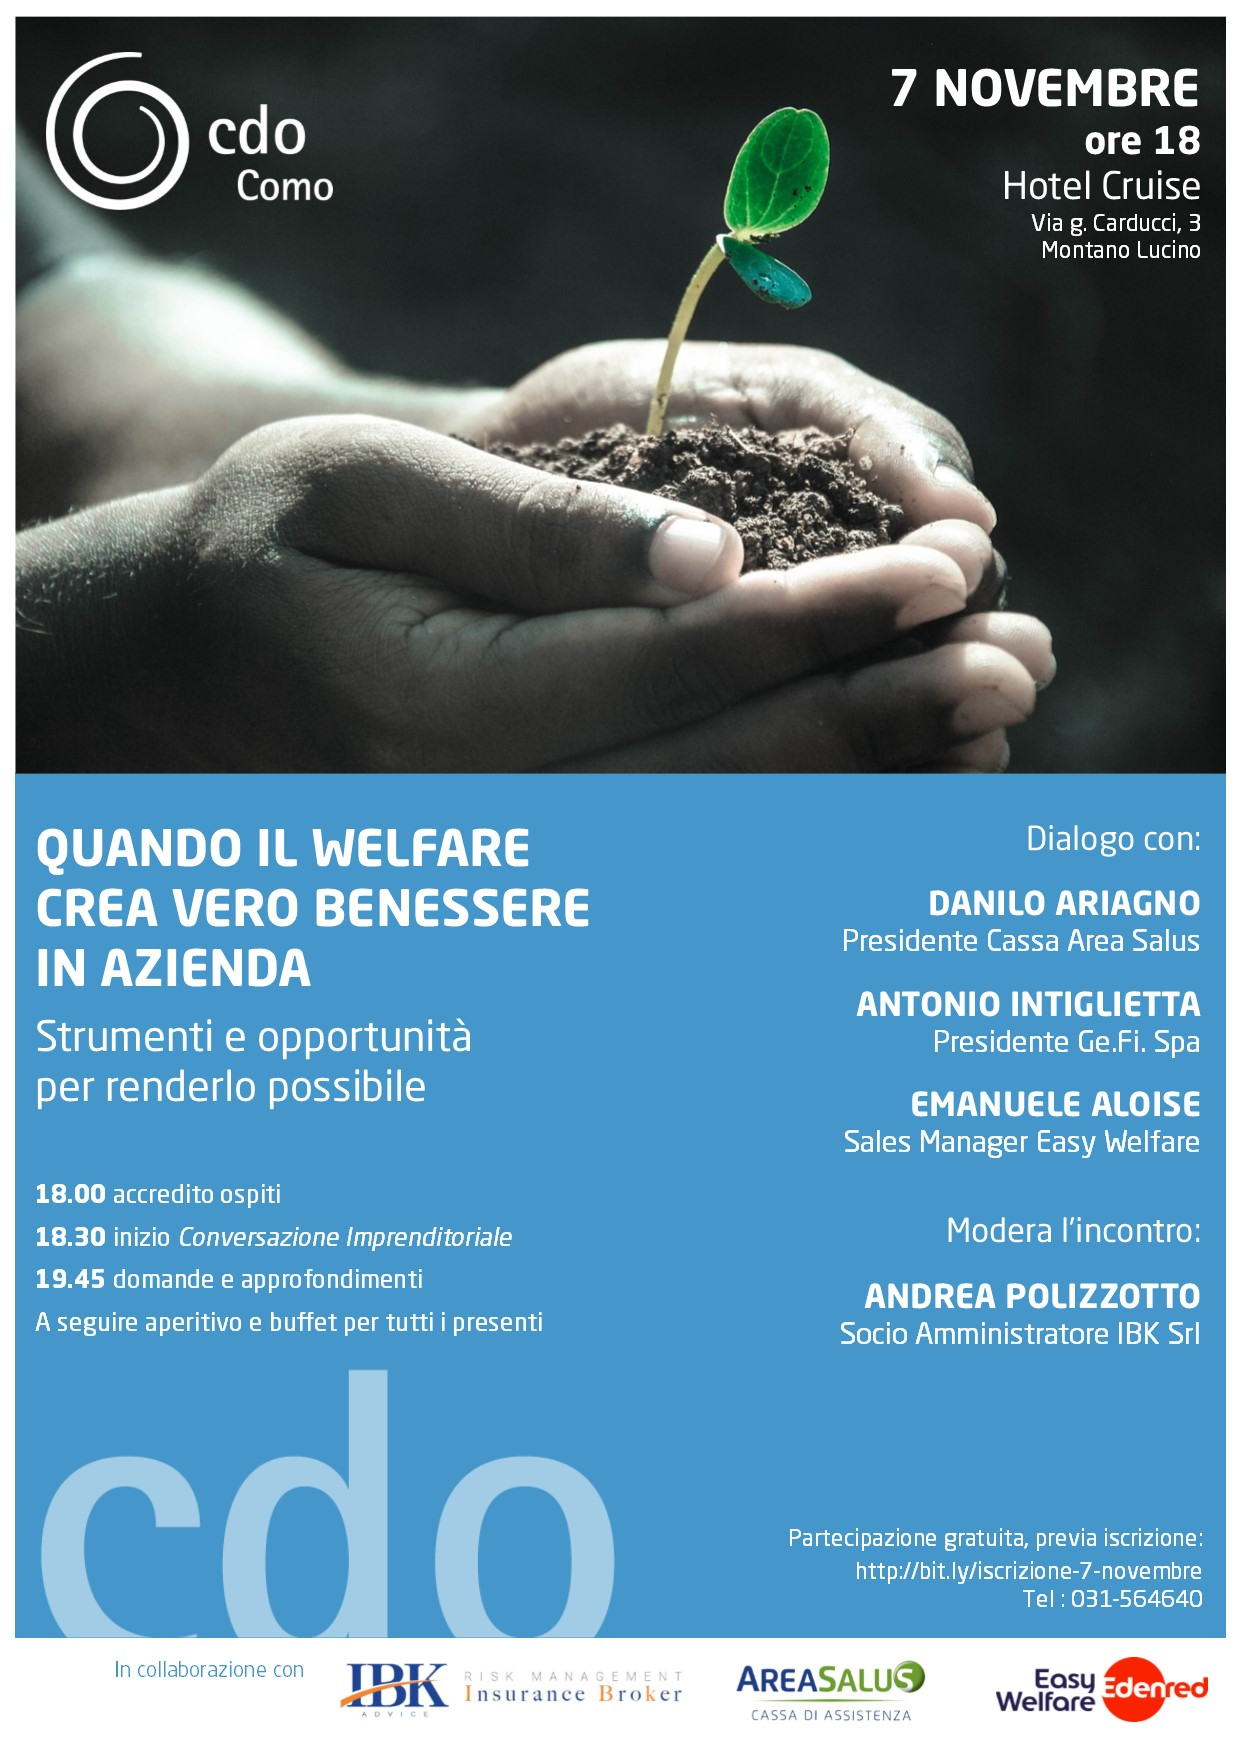 Wealfare Day 07 novembre